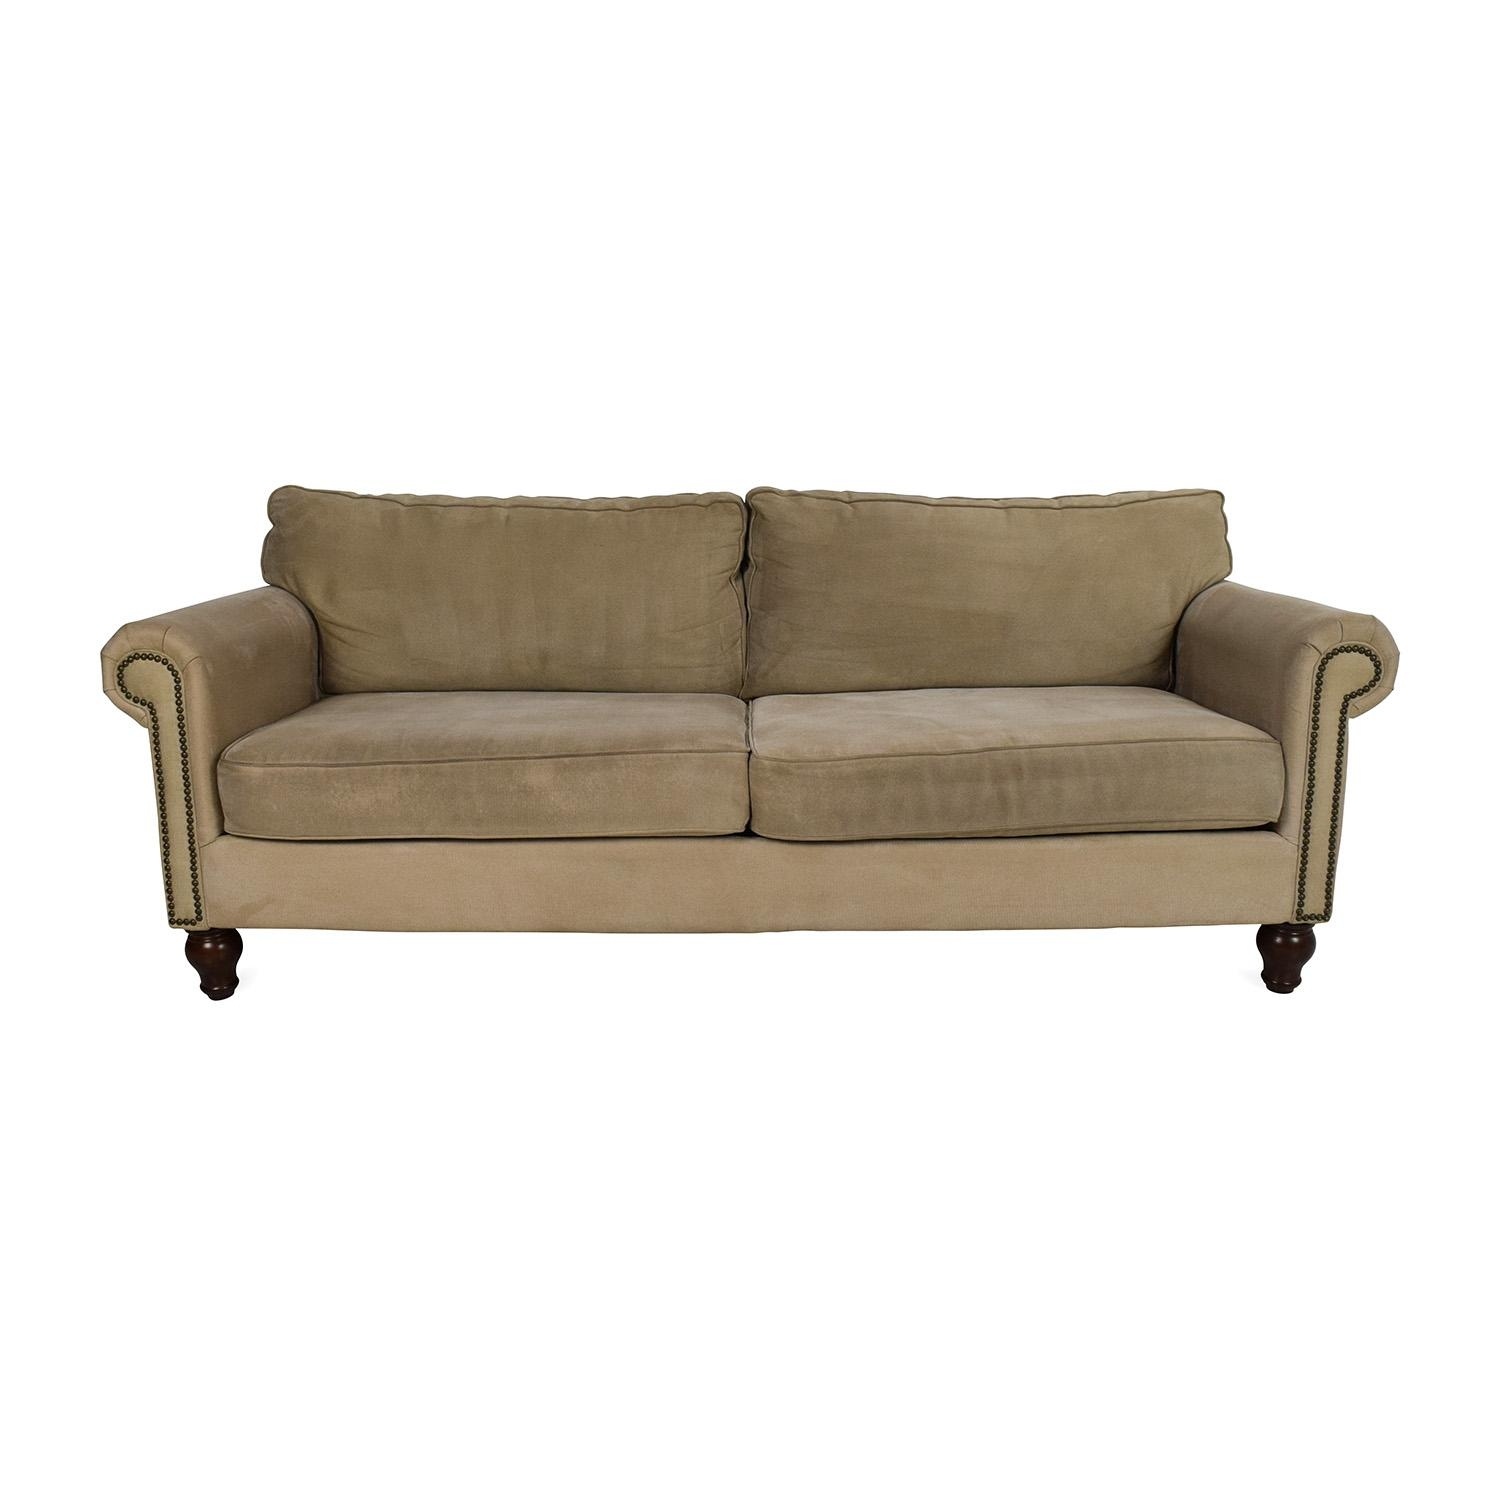 80% Off – Pier 1 Imports Pier 1 Alton Rolled Arm Sofa / Sofas Throughout Pier 1 Sofas (Image 7 of 20)